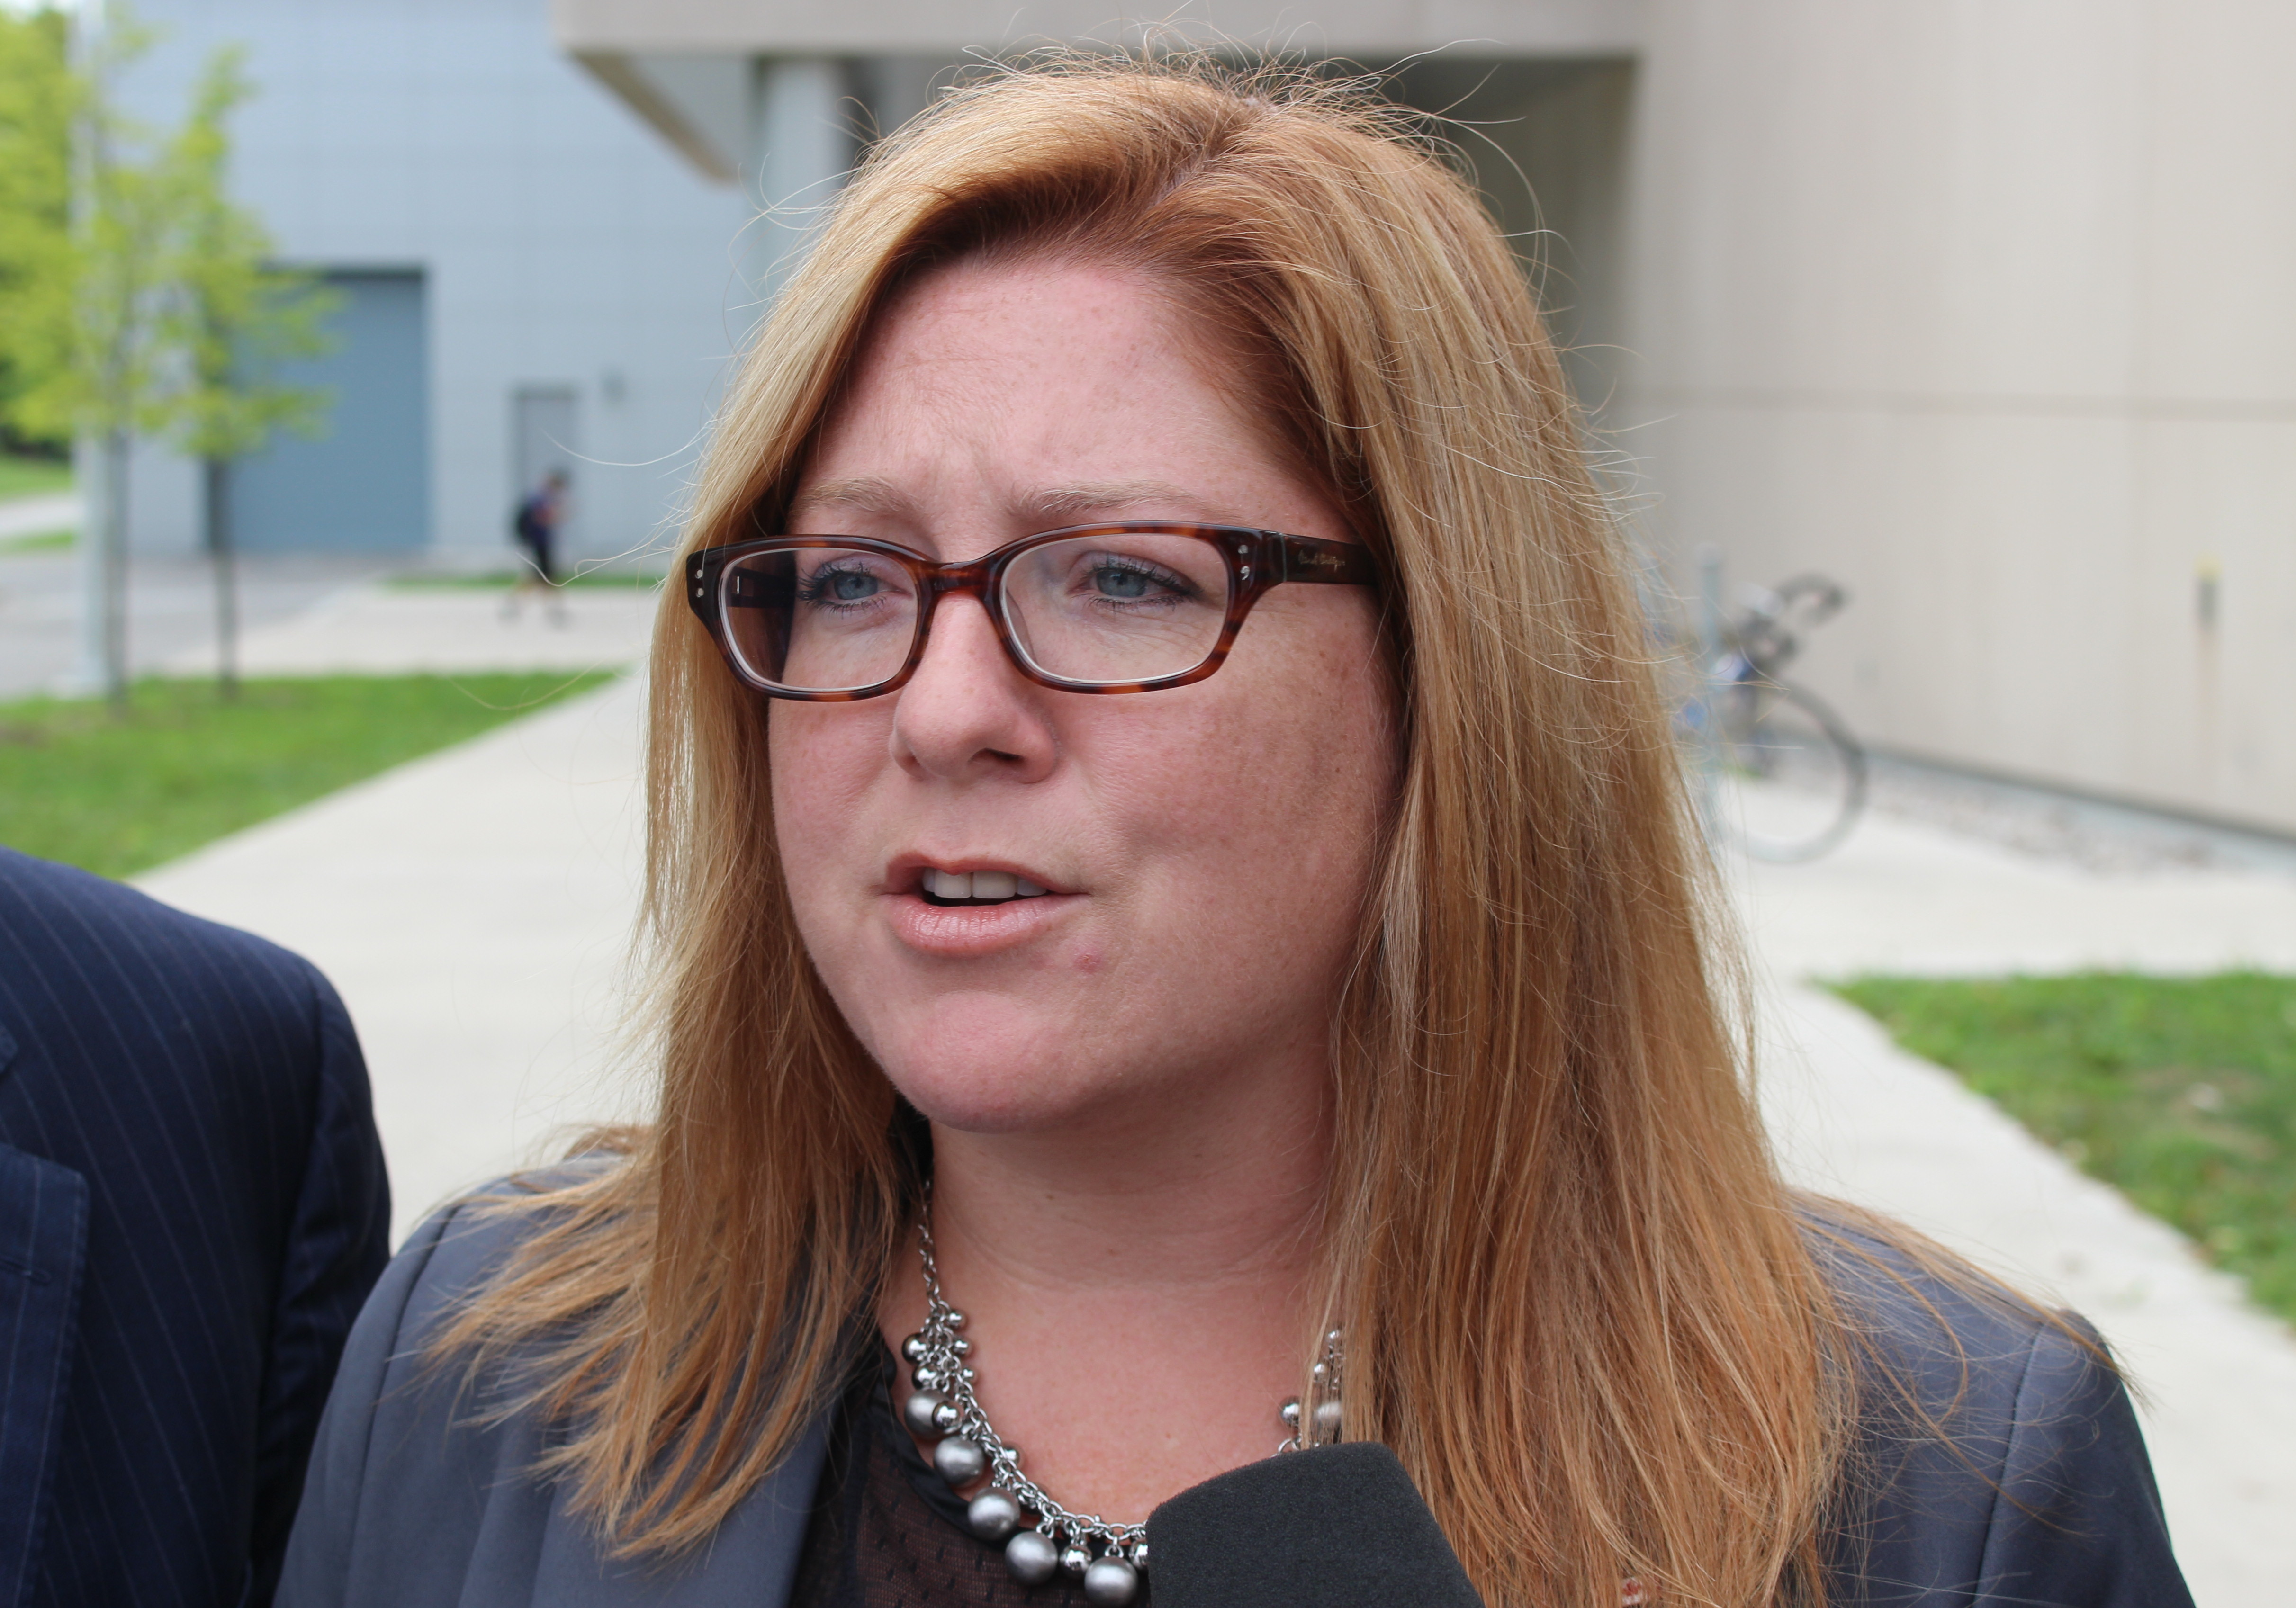 Essex NDP candidate Tracey Ramsey speaks to the media out front of the University of Windsors Centre For Engineering and Innovation, September 9, 2015. (Photo by Mike Vlasveld)